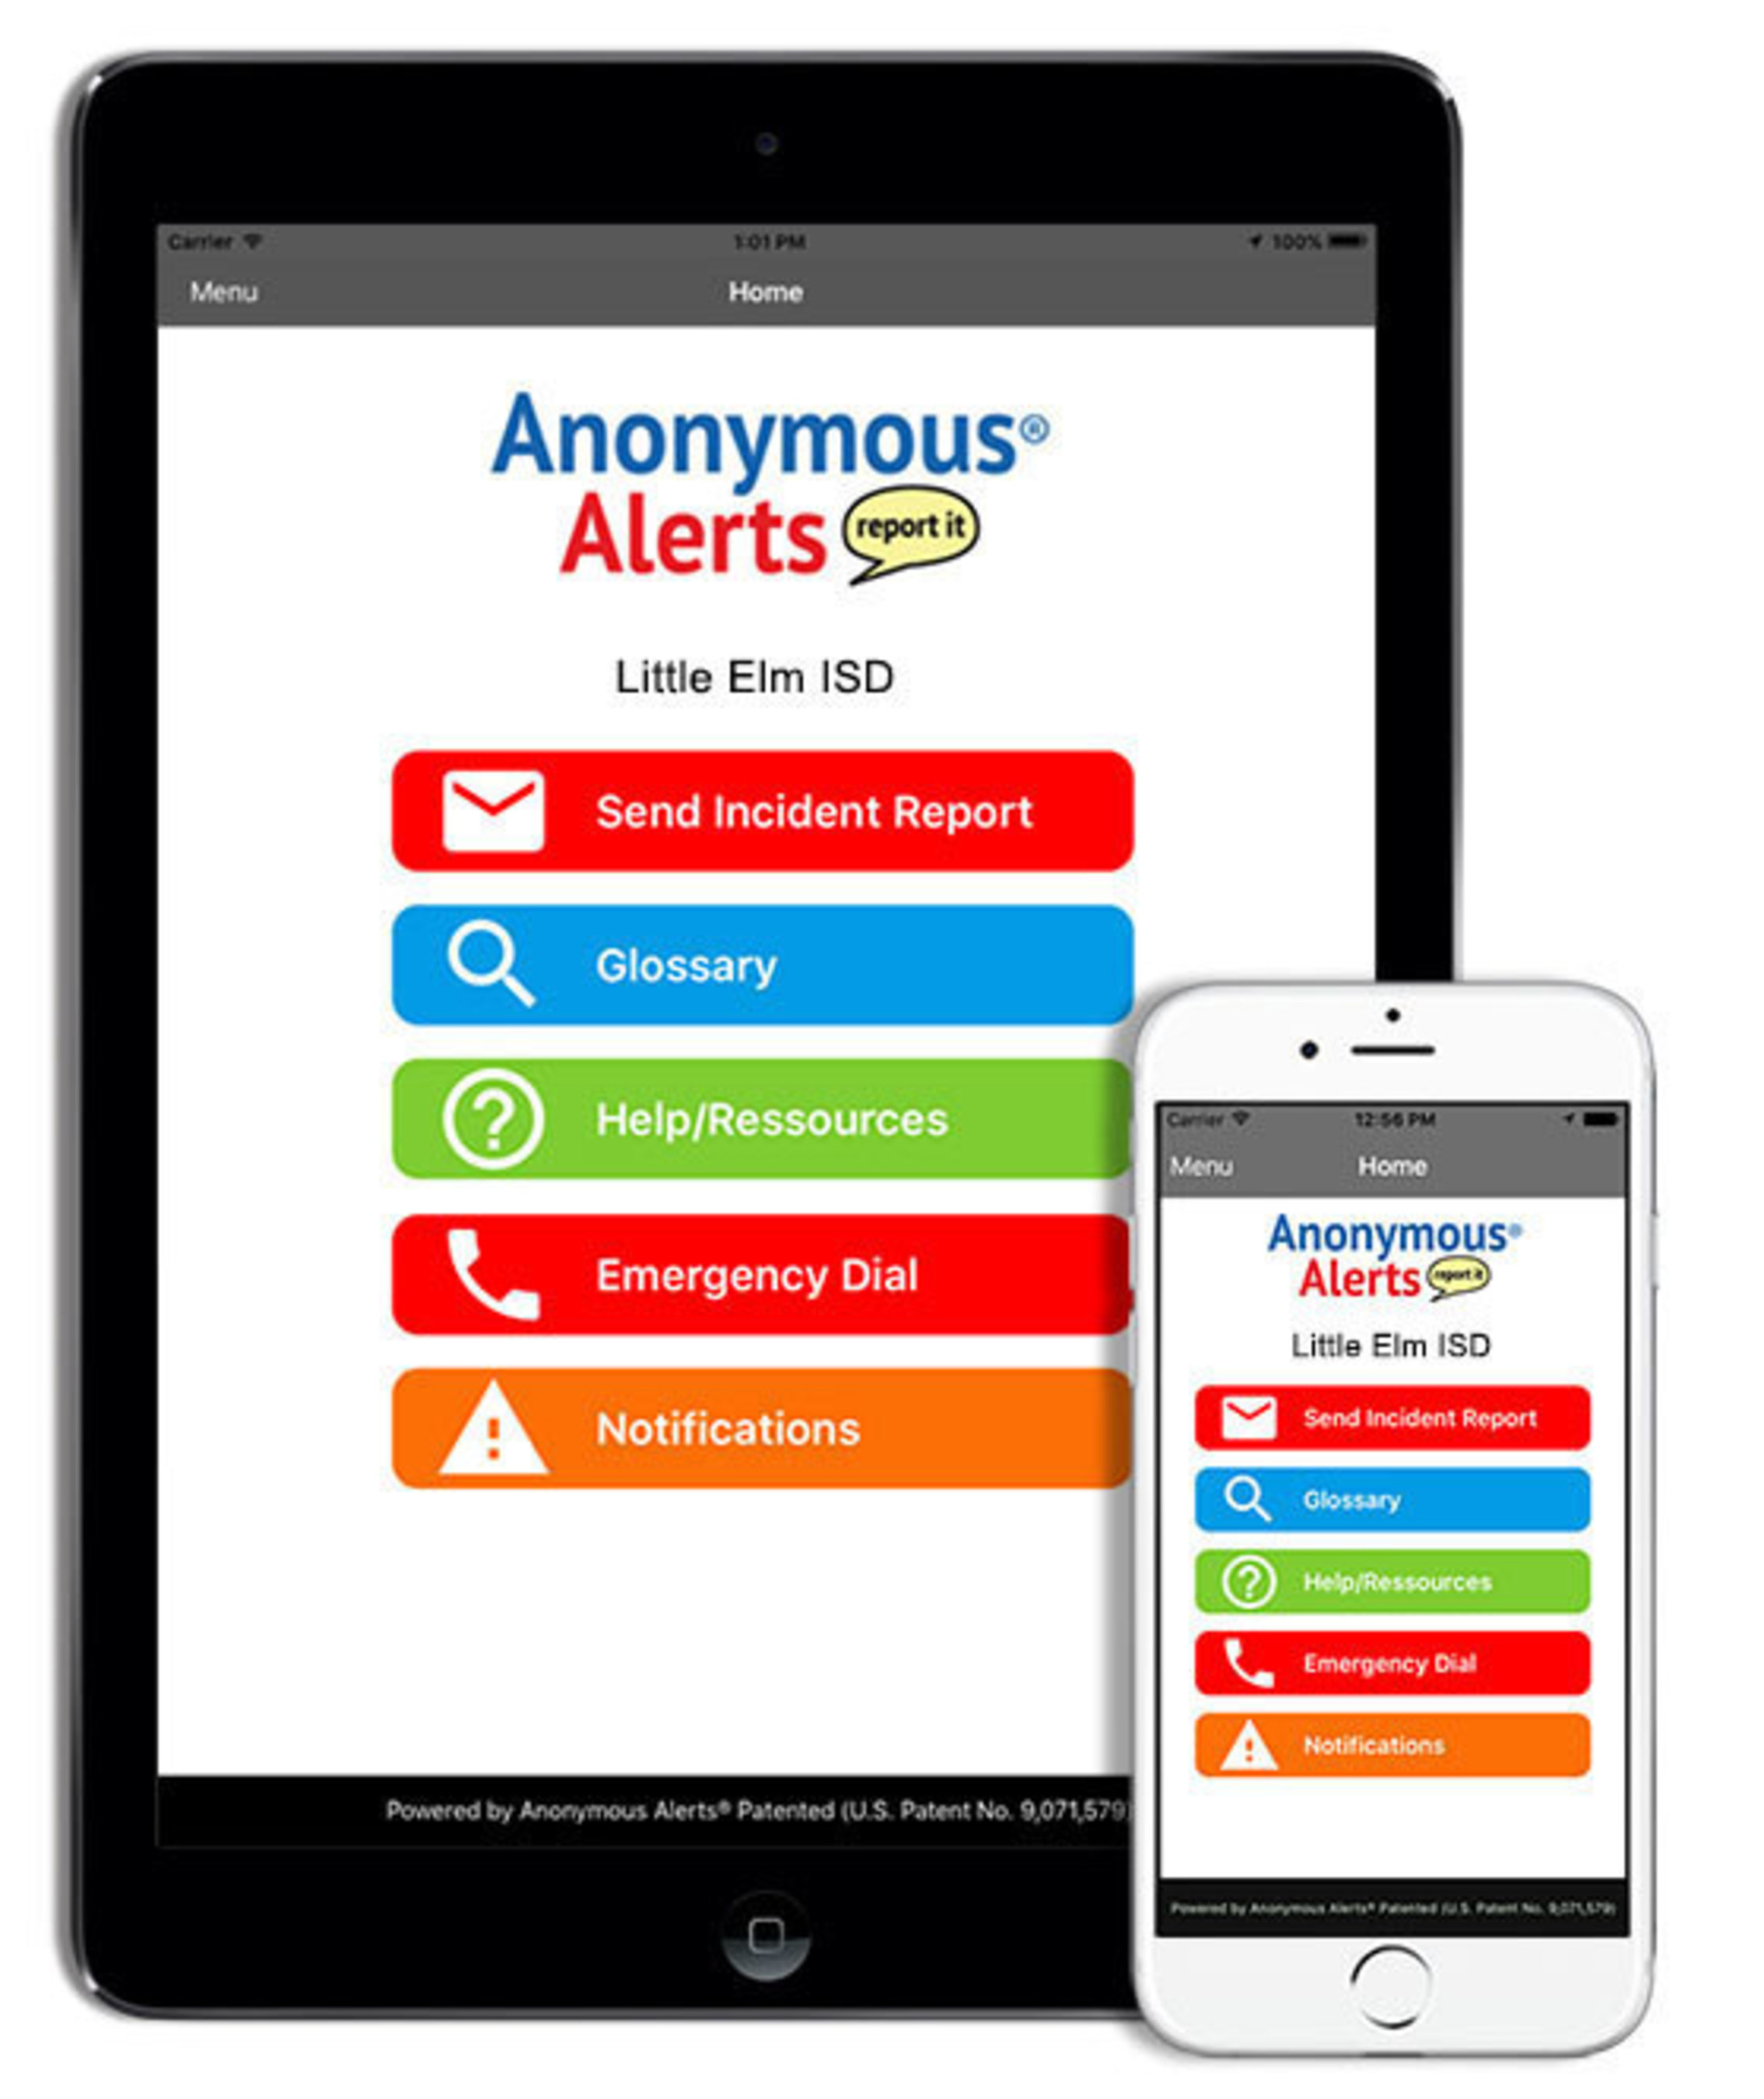 Little Elm ISD Launches Anonymous Alerts Anti-bullying and Safety Reporting App